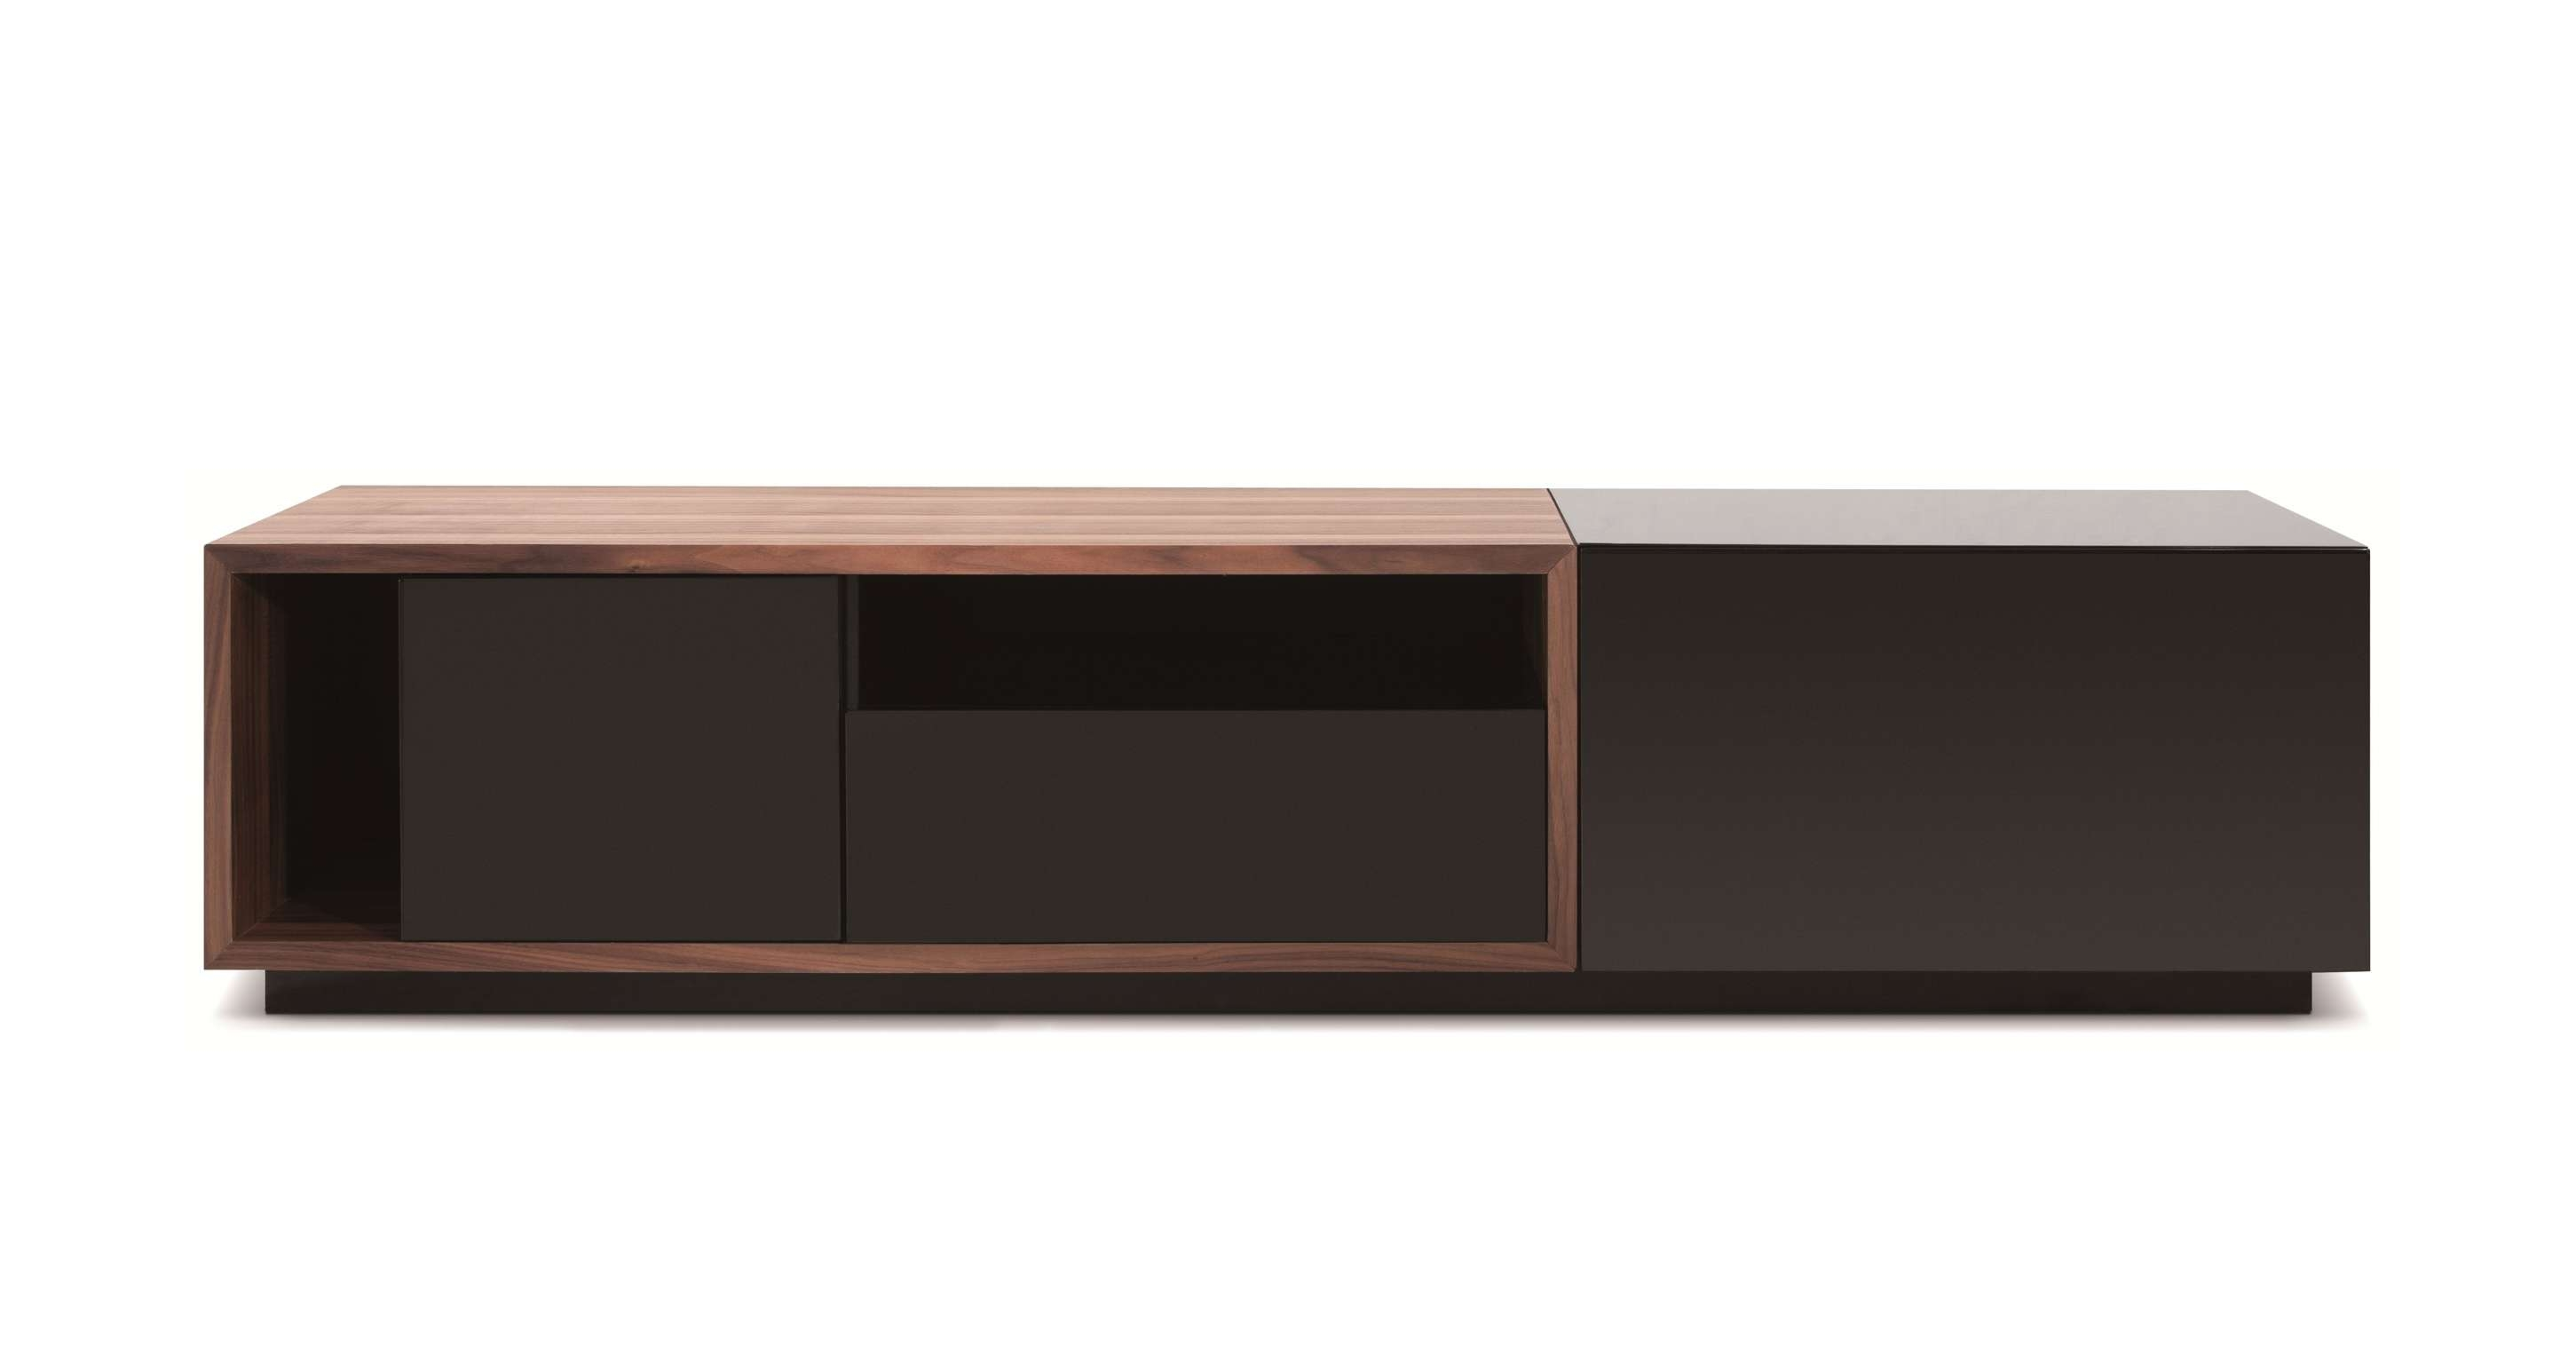 Unusual Wilson Tv Stand Wilson Tv Stand Reviews All To Snazzy Cado Pertaining To Modern Wood Tv Stands (View 13 of 15)